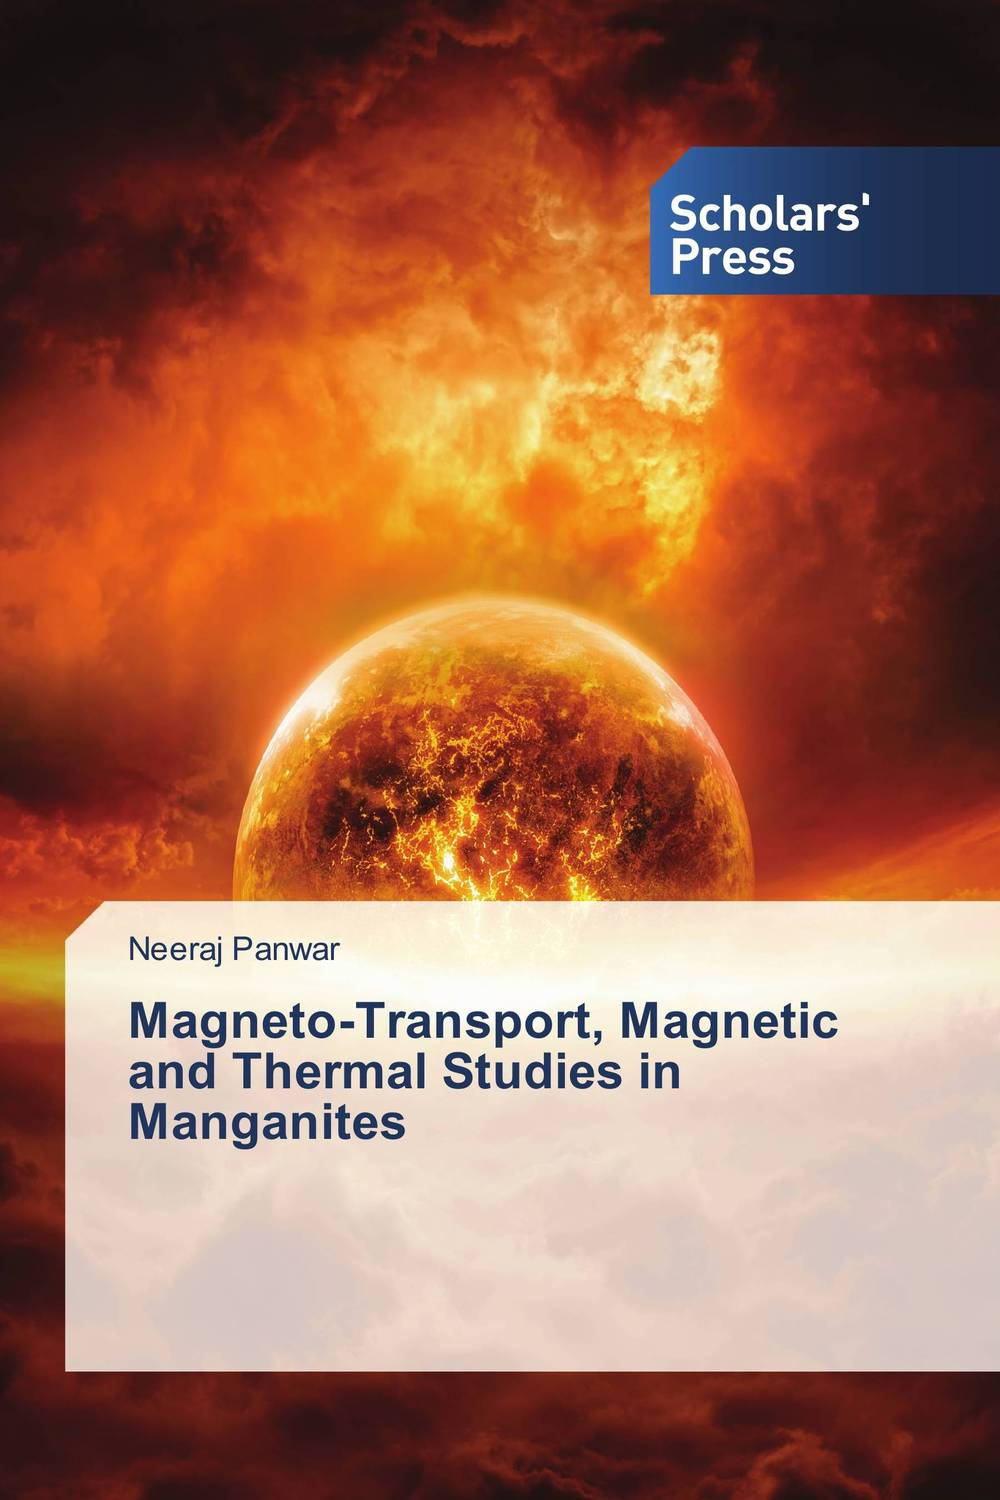 Magneto-Transport, Magnetic and Thermal Studies in Manganites relativistic theory of electron transport in magnetic layers